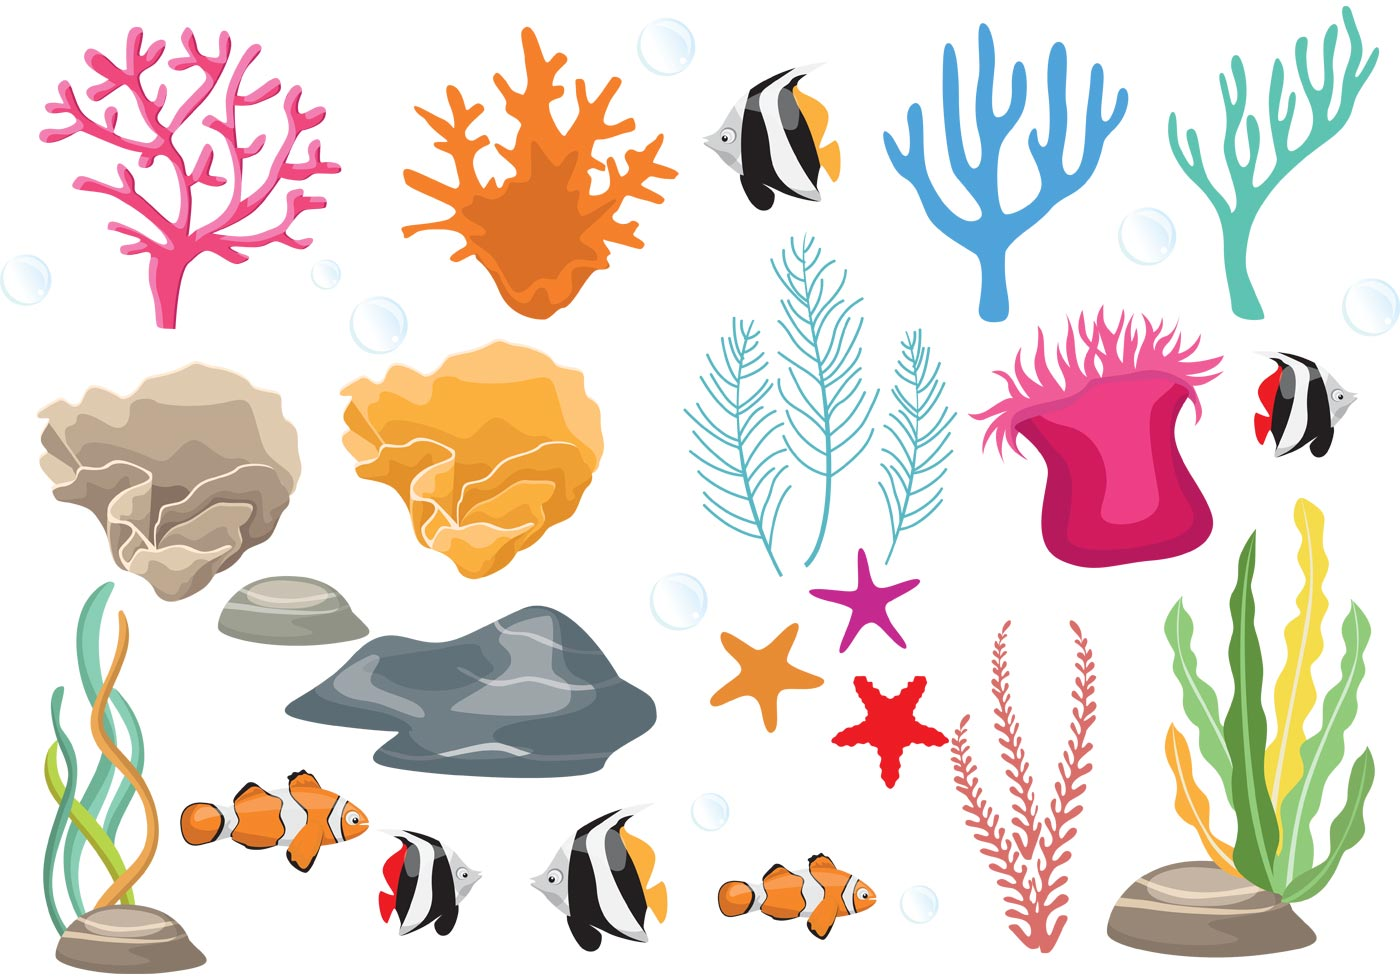 Discover ideas about Coral Reef Drawing - Pinterest